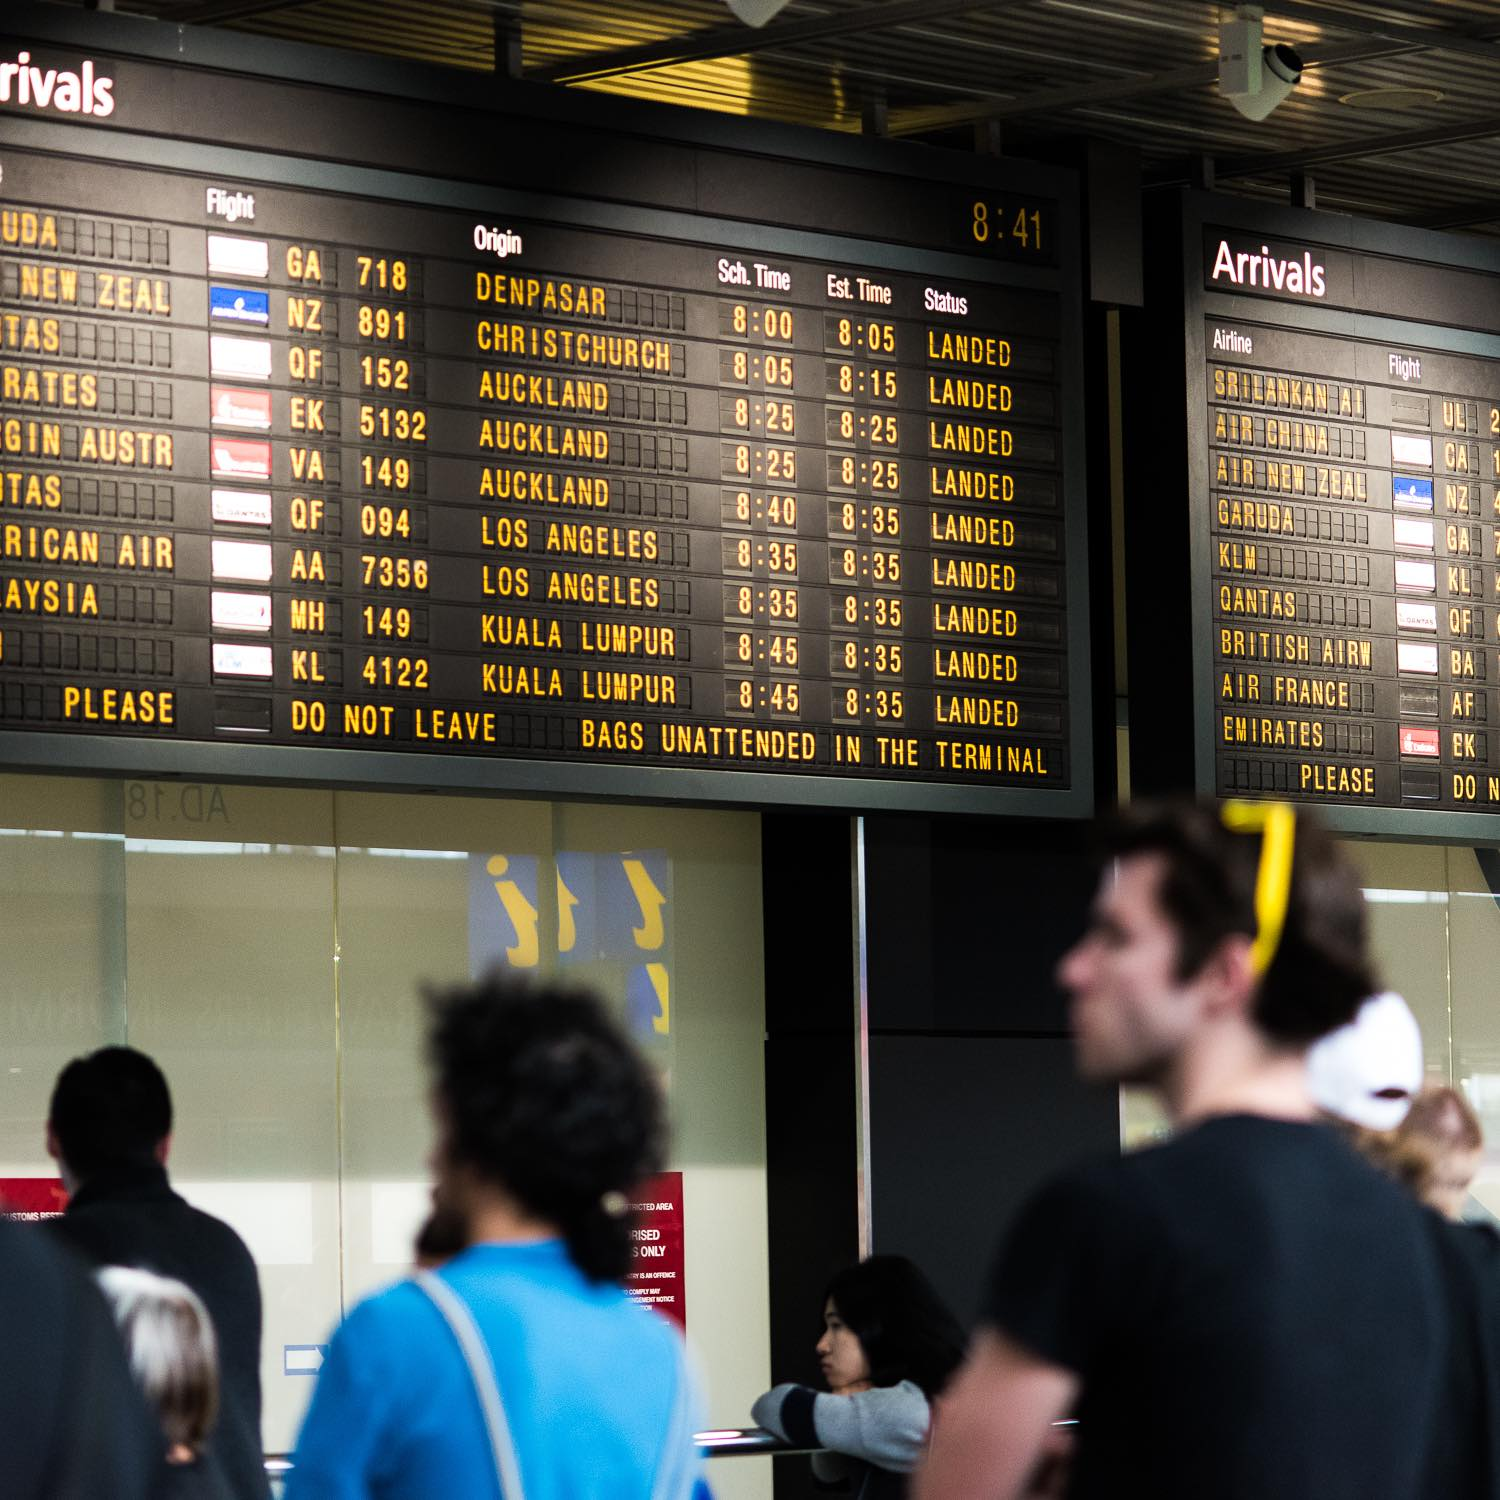 Arrivals hall, Melbourne airport (Photo: Alex Steffler/Flickr)